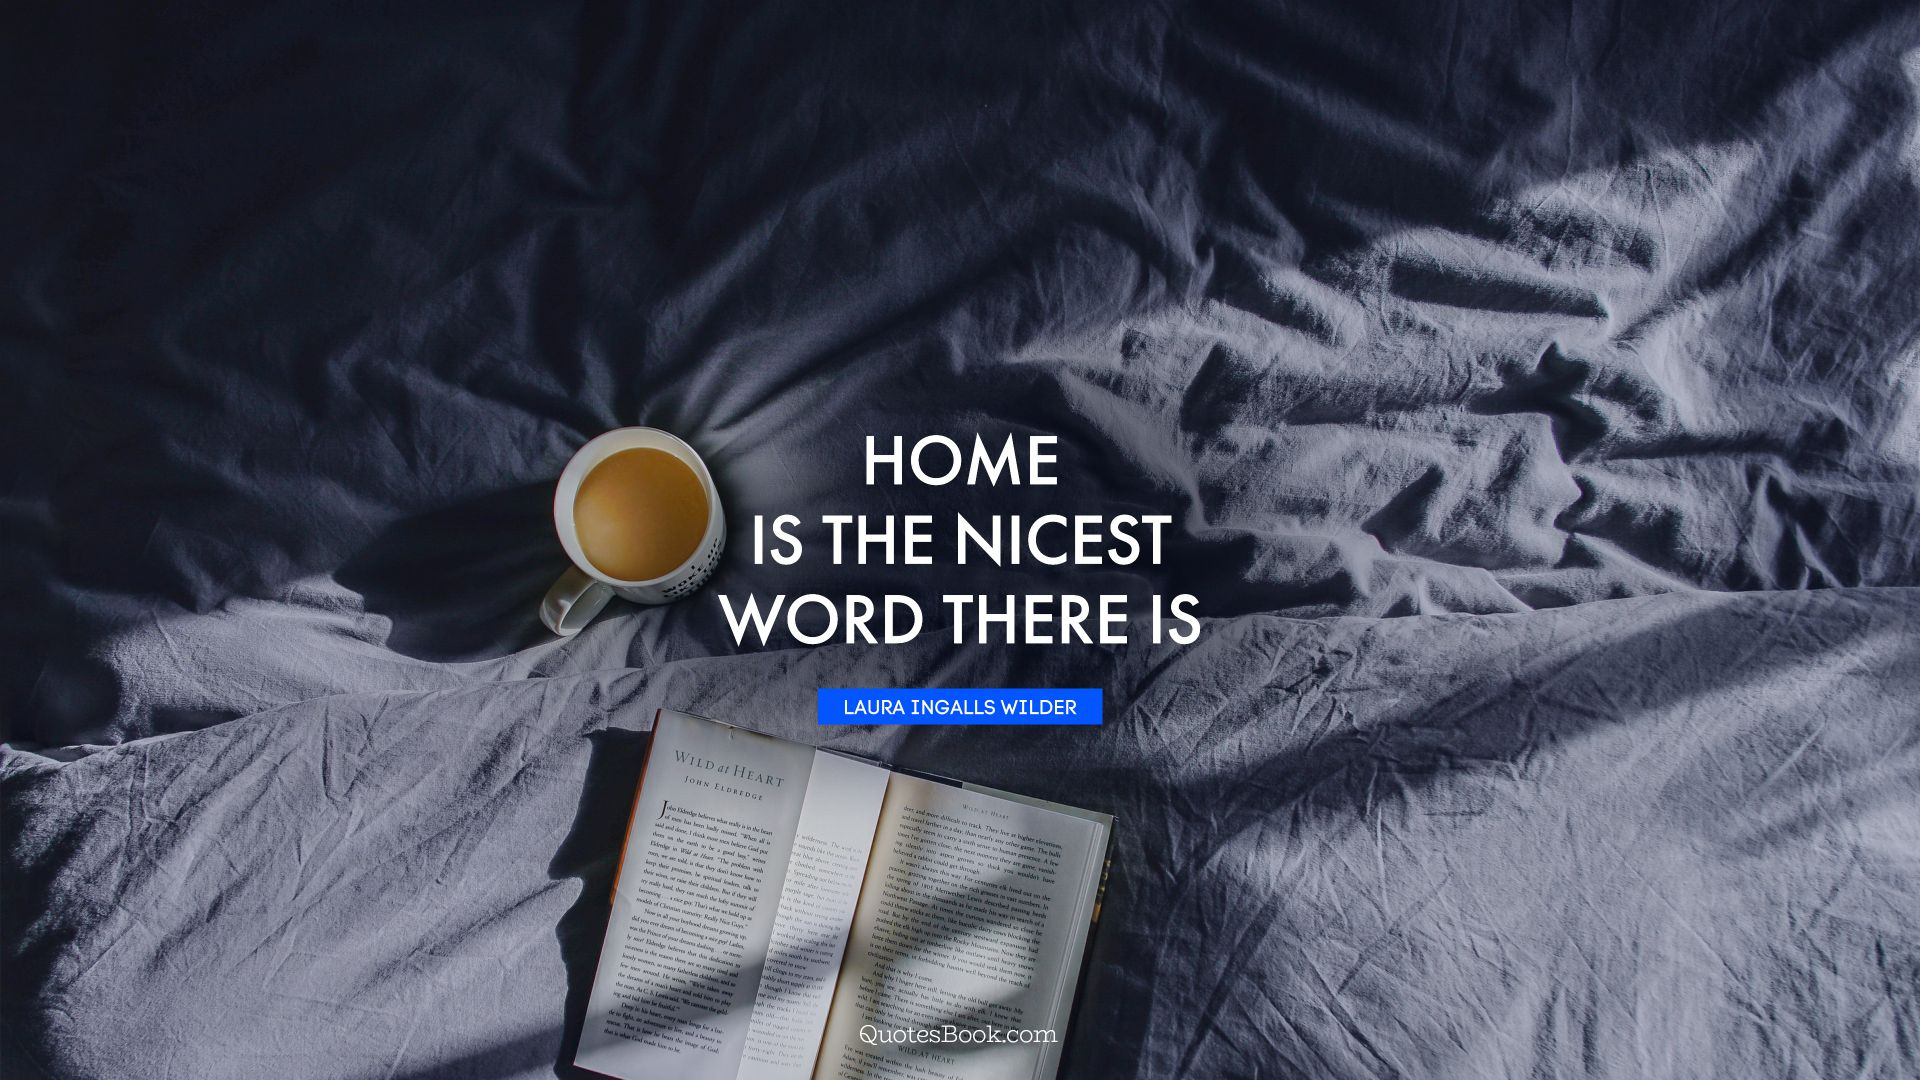 Home is the nicest word there is. - Quote by Laura Ingalls Wilder